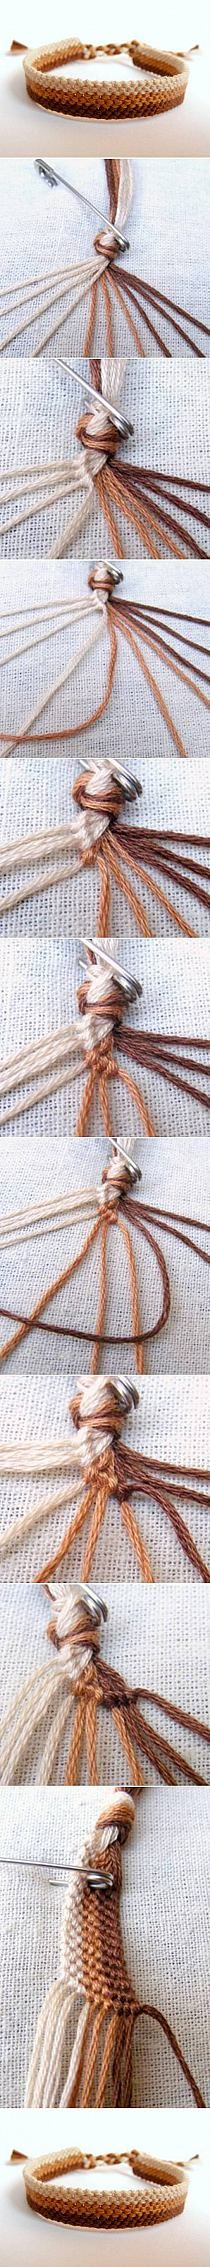 DIY Plant Pot Hanging Rope DIY Projects | UsefulDIY.com na Stylowi.pl